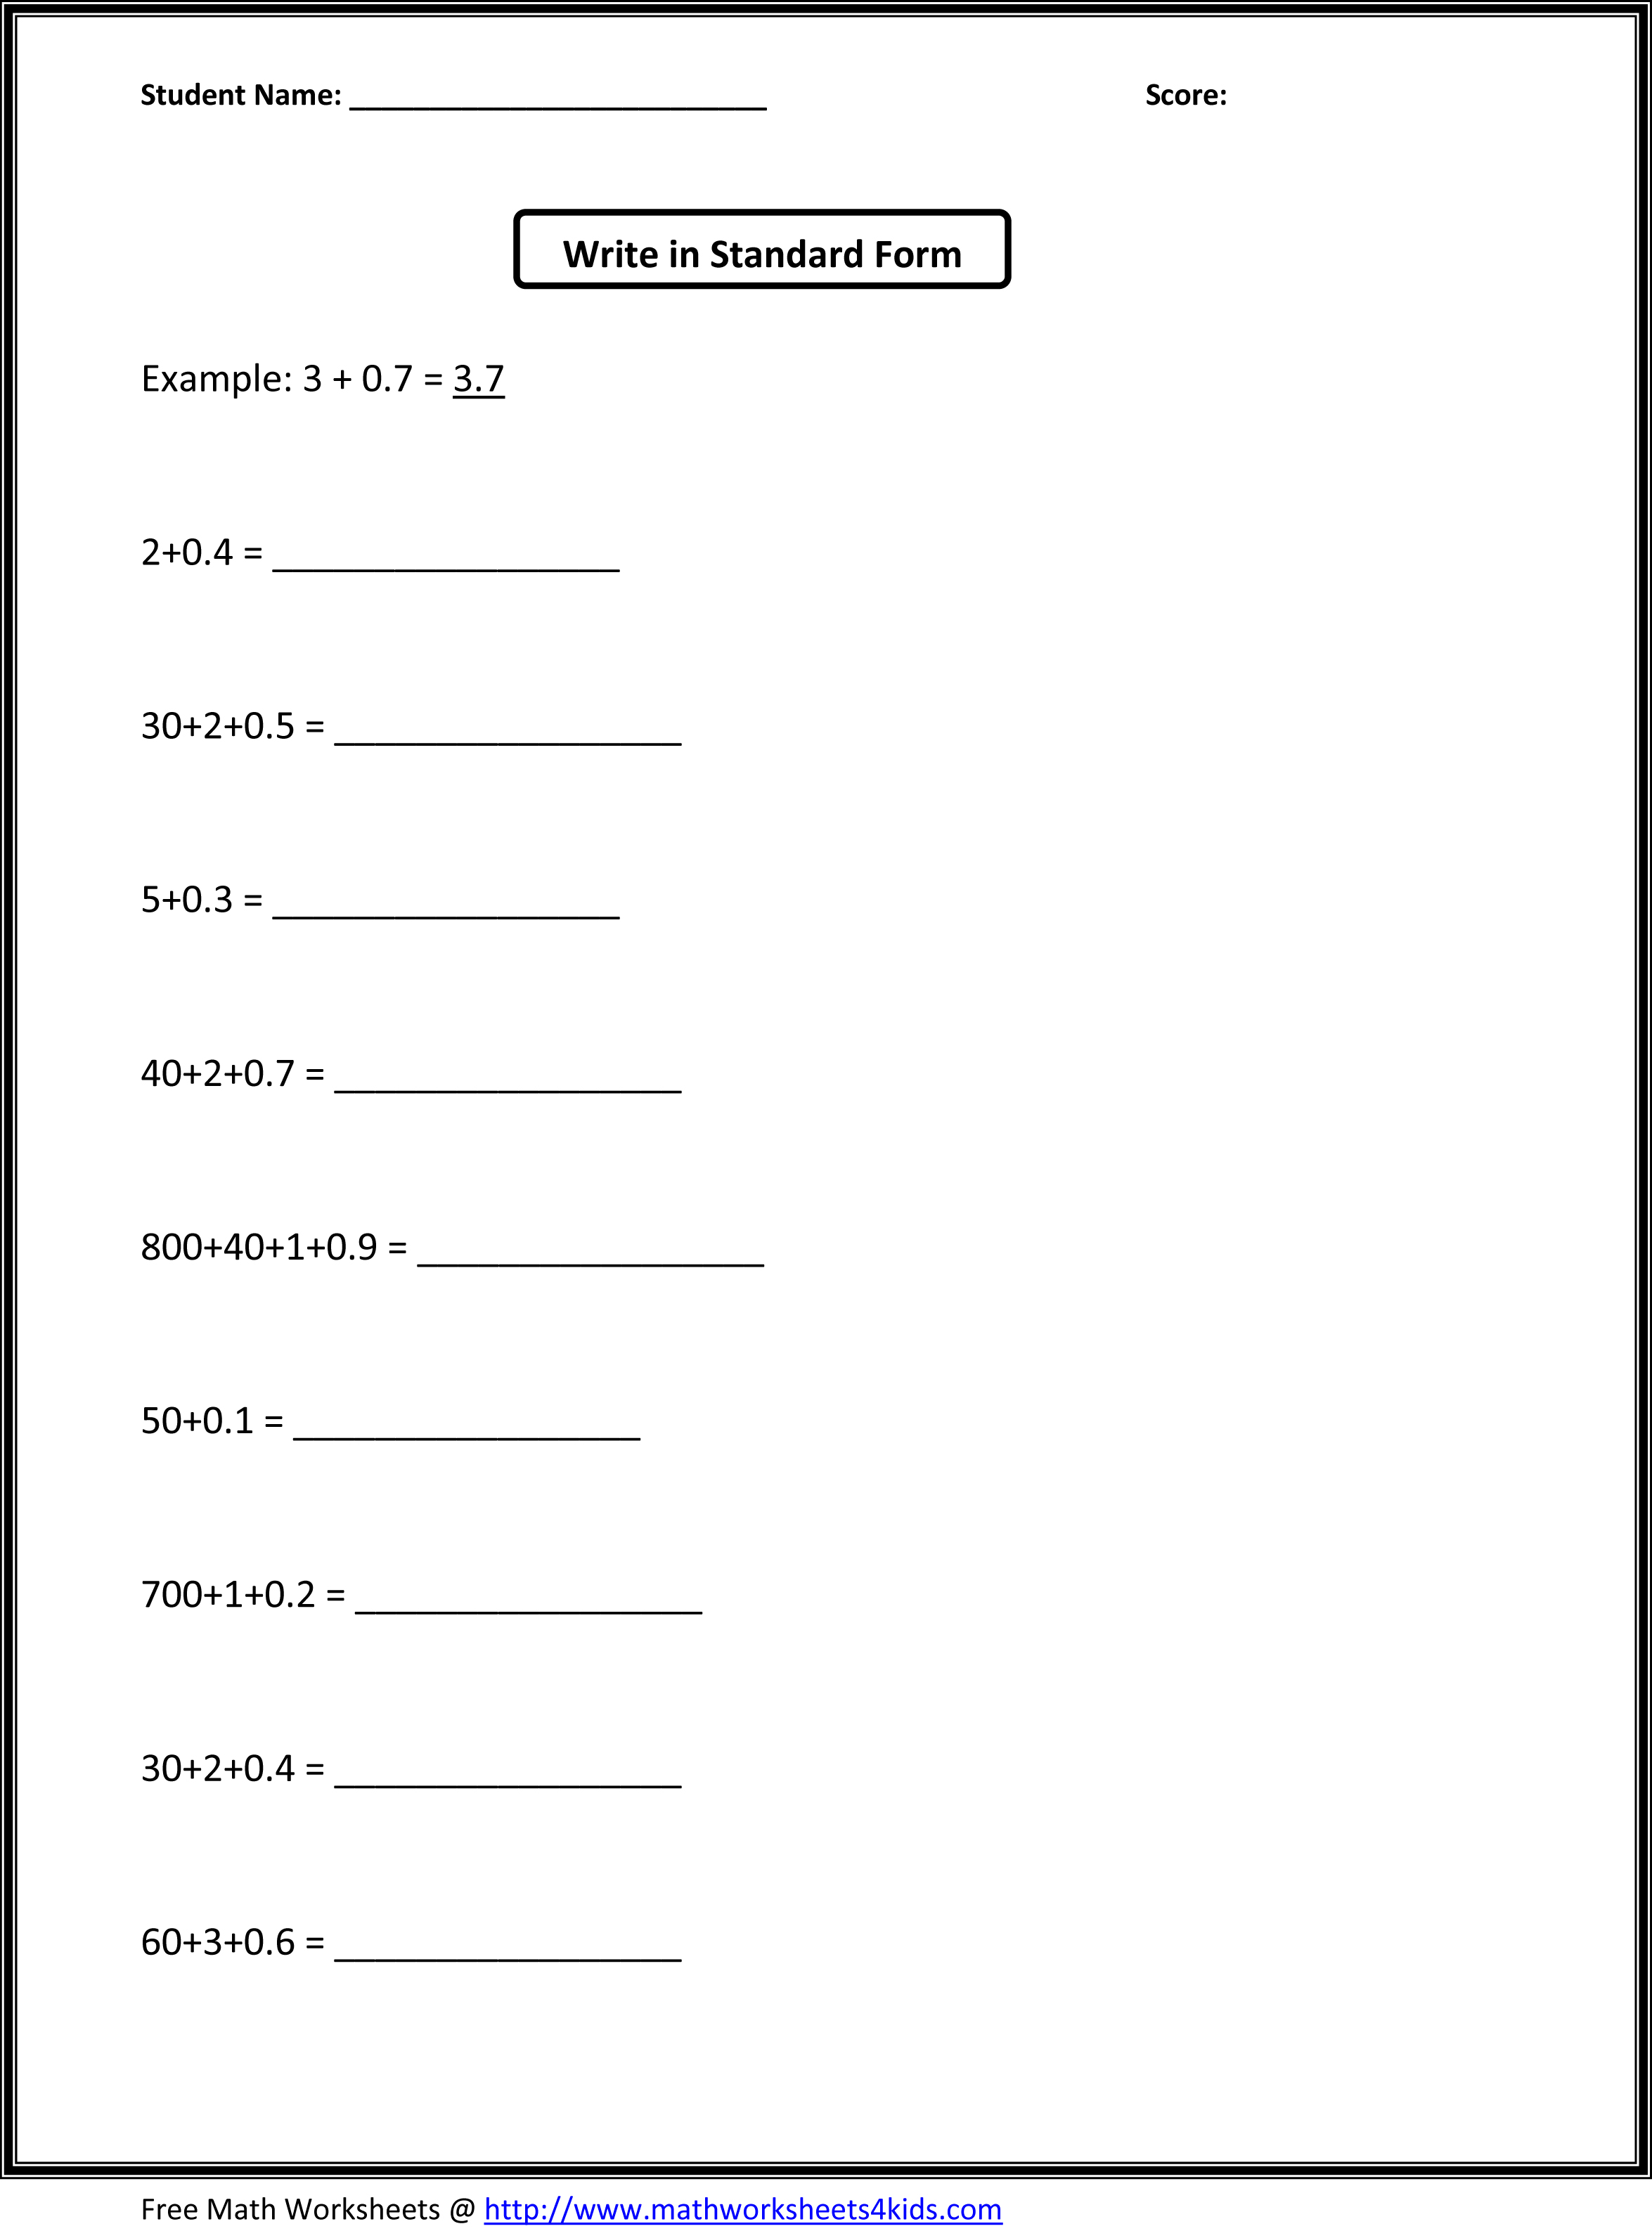 15 Best Images Of Book Review Worksheets 5th Grade